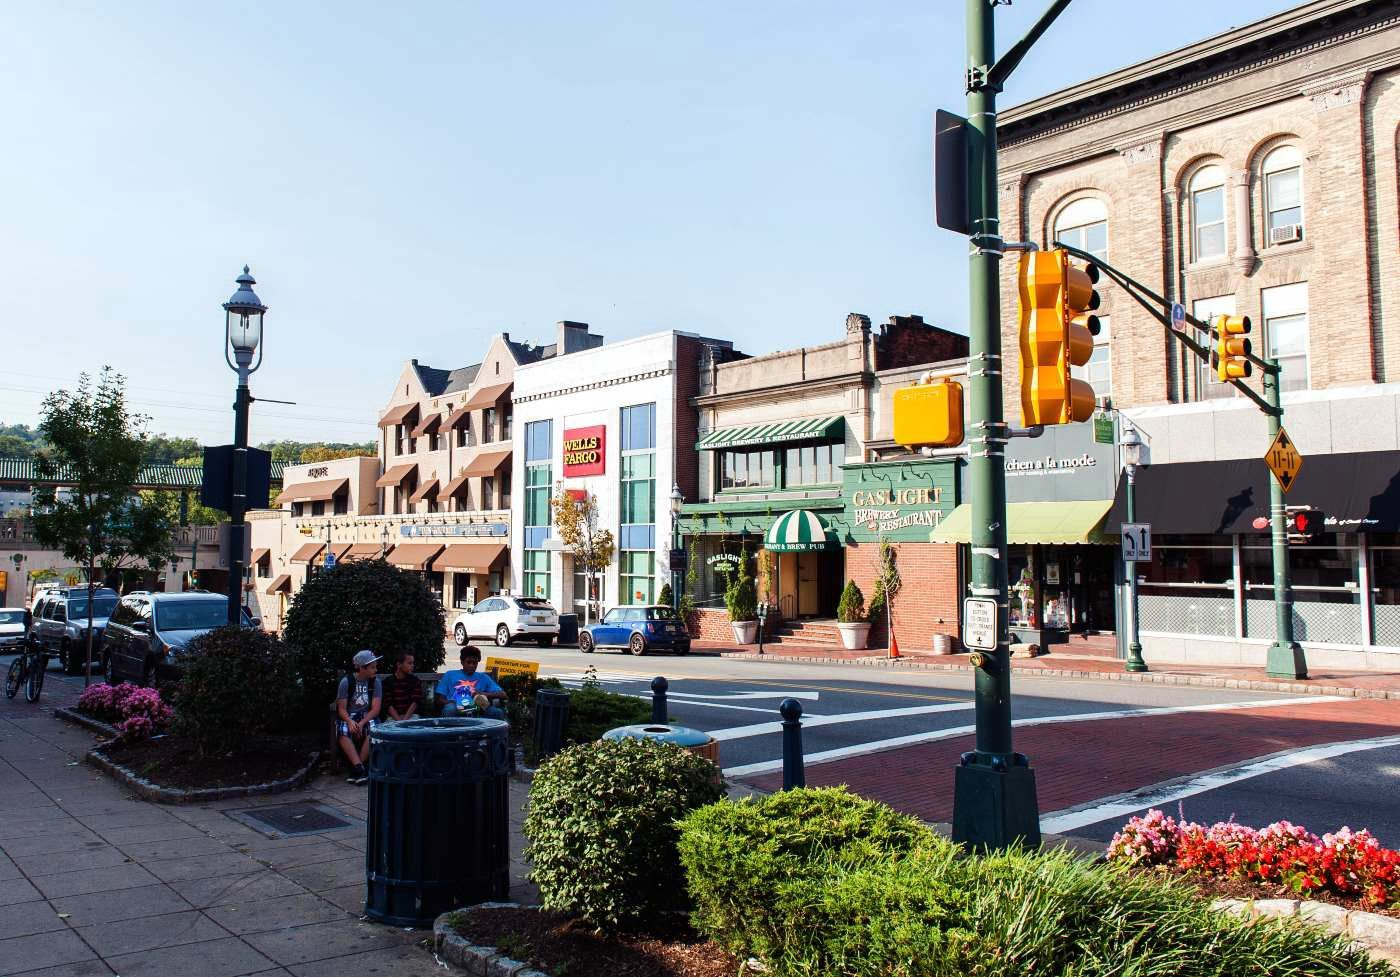 South Orange, New Jersey in the summer